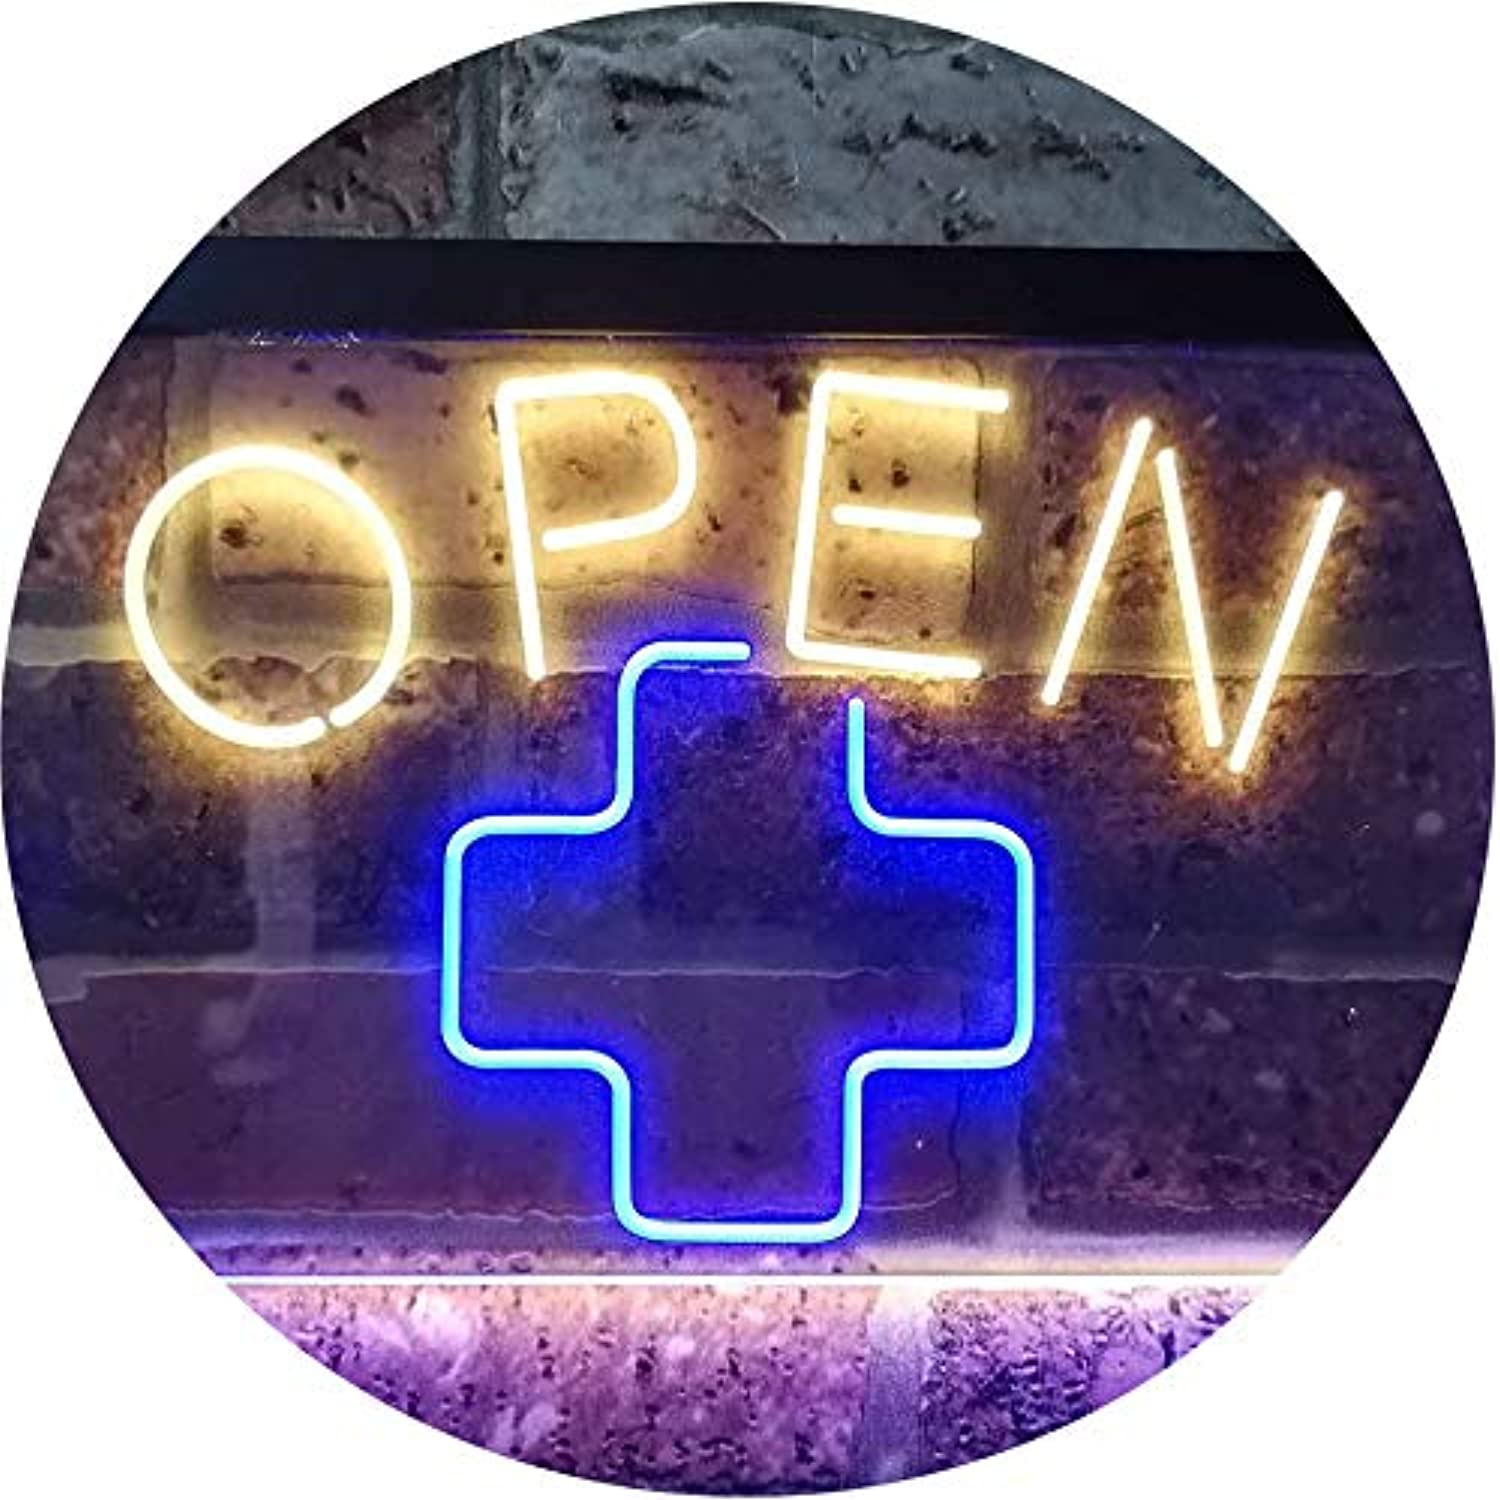 ADVPRO Open Medical Cross Shop Display Décor Dual Farbe LED Barlicht Neonlicht Lichtwerbung Neon Sign Blau & Gelb 400mm x 300mm st6s43-i3209-by